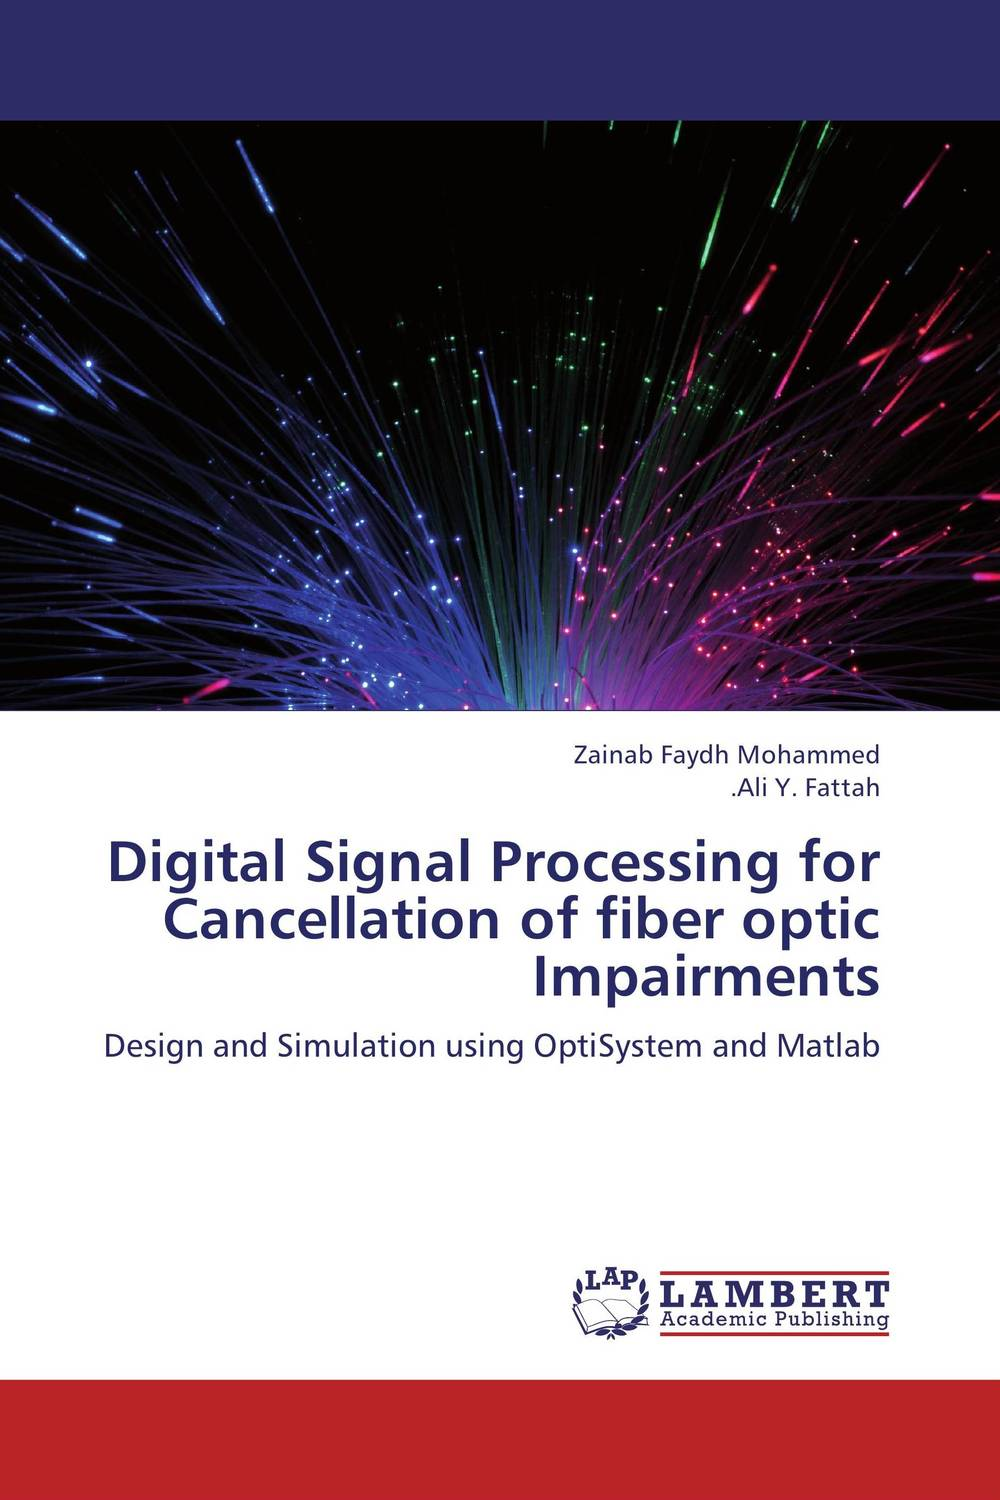 Digital Signal Processing for Cancellation of fiber optic Impairments